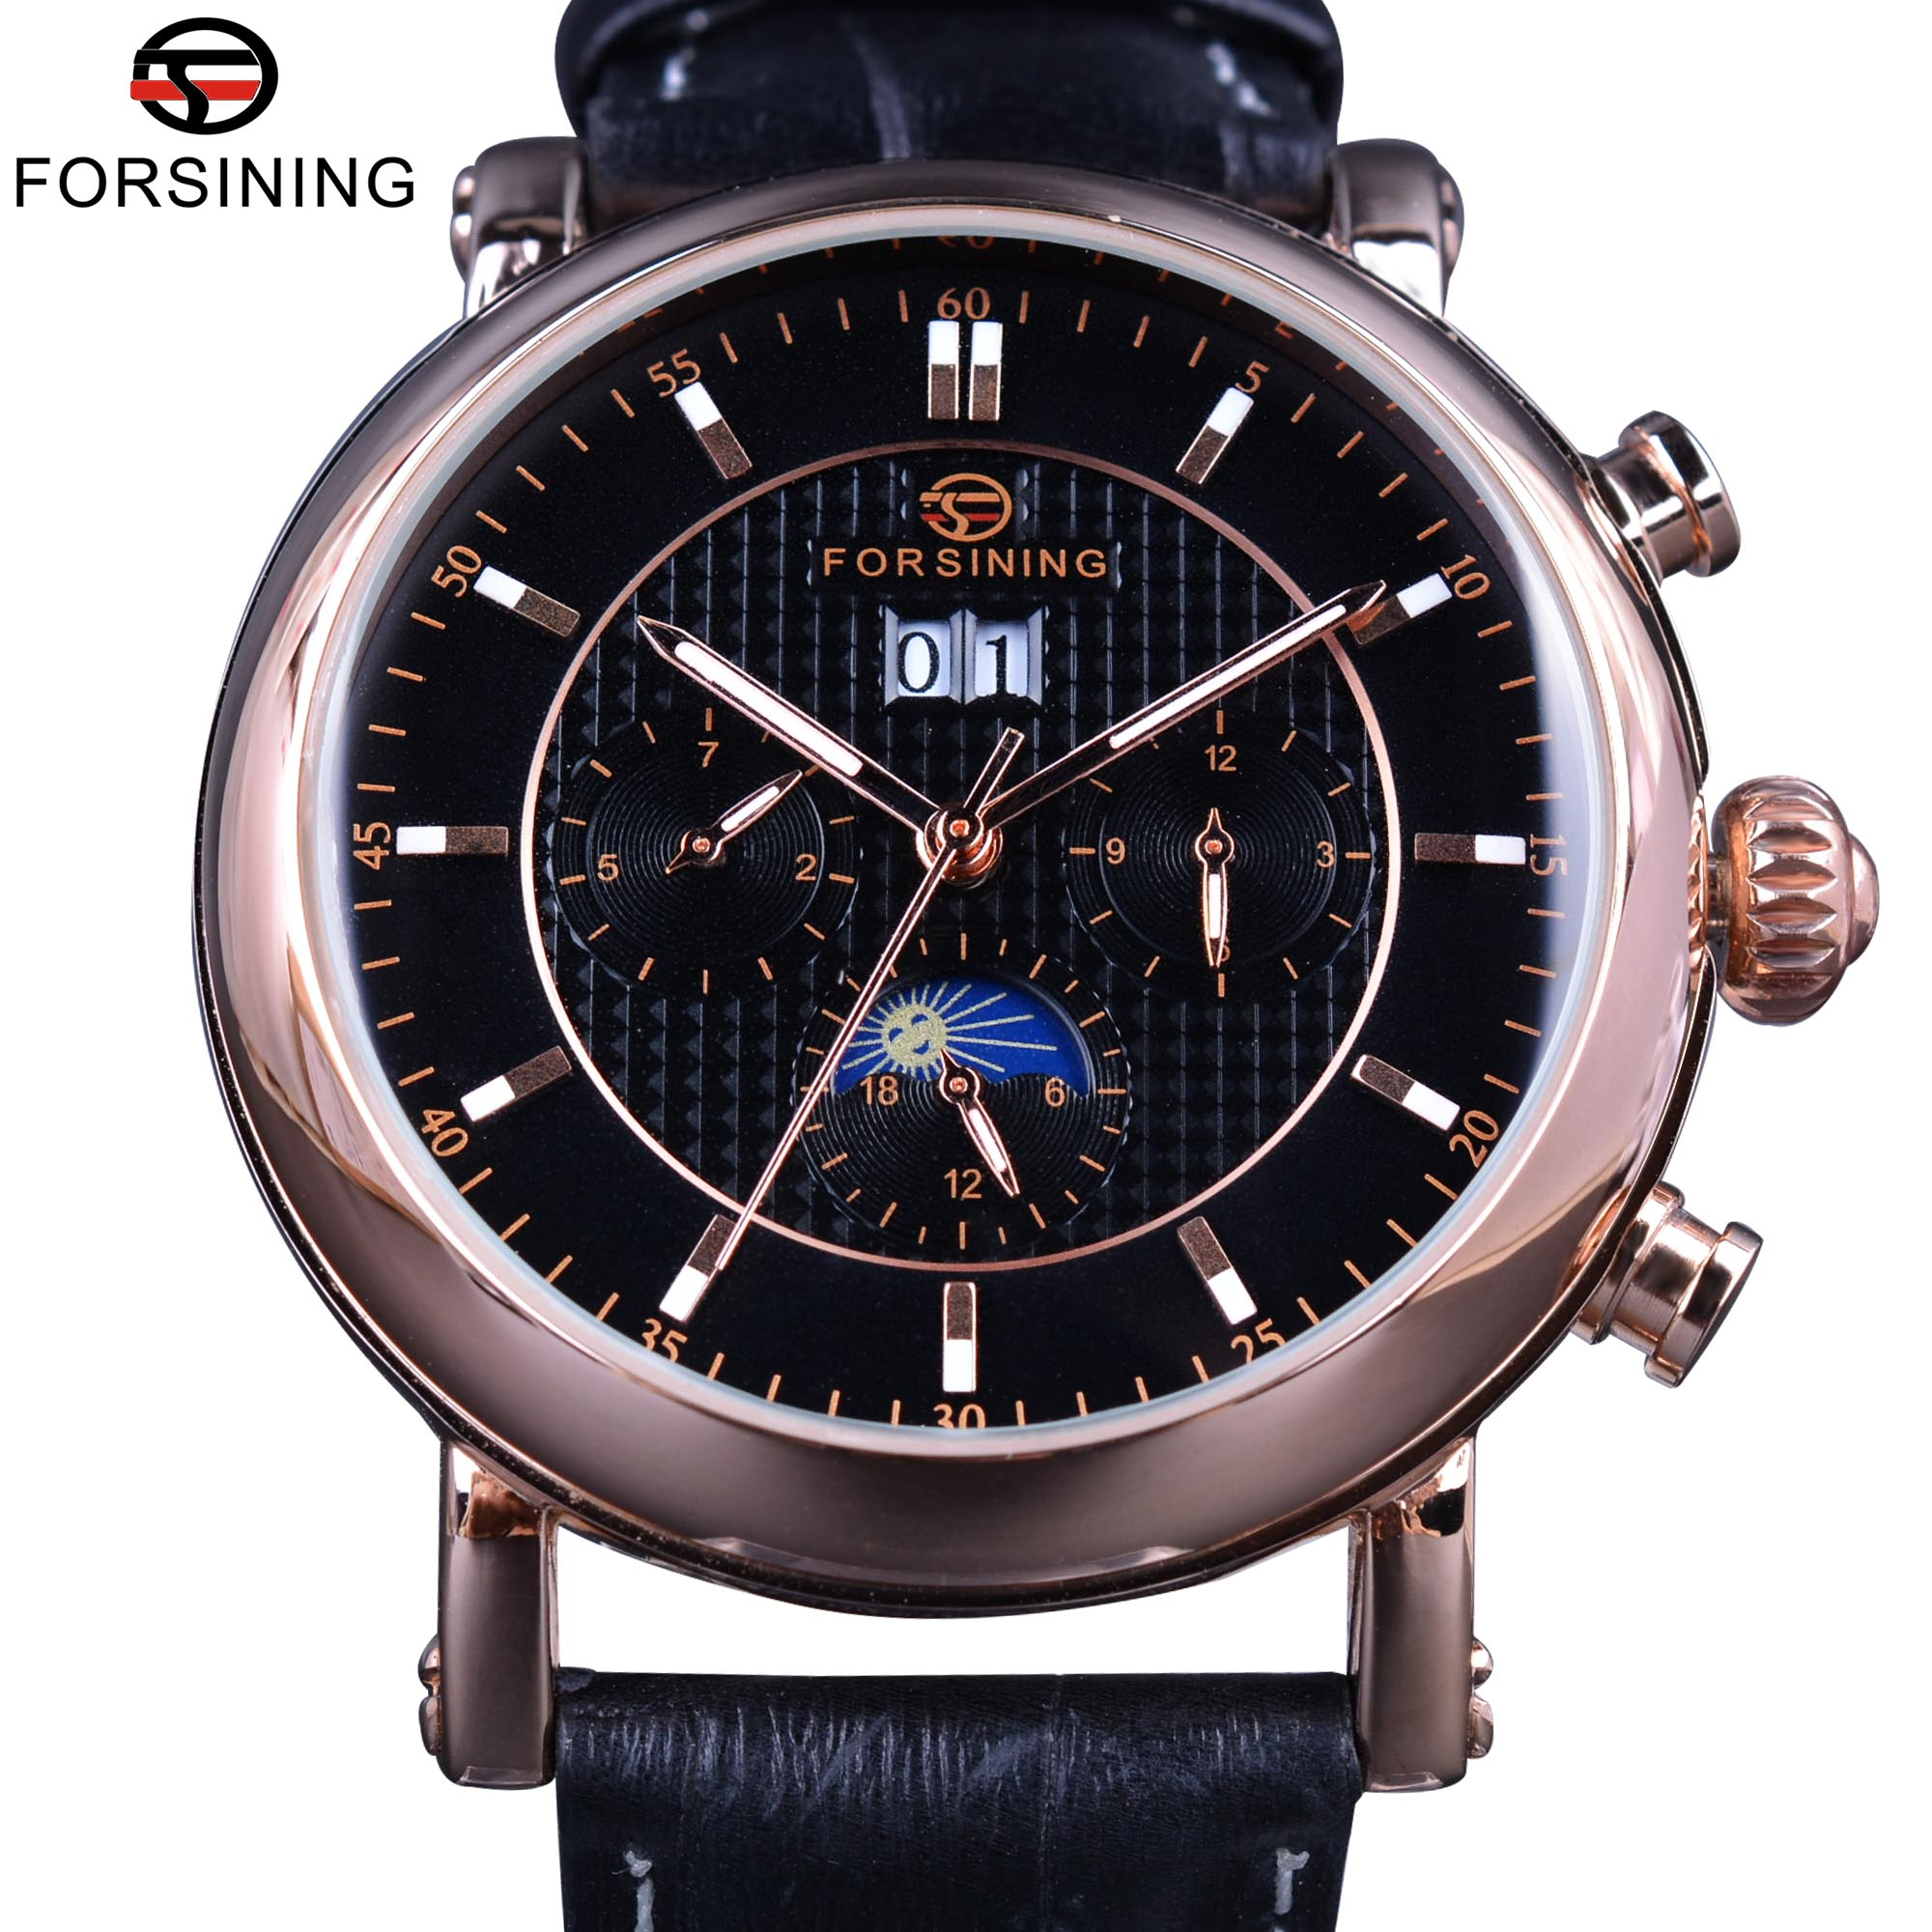 Forsining 2017 Rose Golden Design Moon Phase Calendar Display Mens Watches Top Brand Luxury Automatic Fashion Mechanical Watch forsining date month display rose golden case mens watches top brand luxury automatic watch clock men casual fashion clock watch